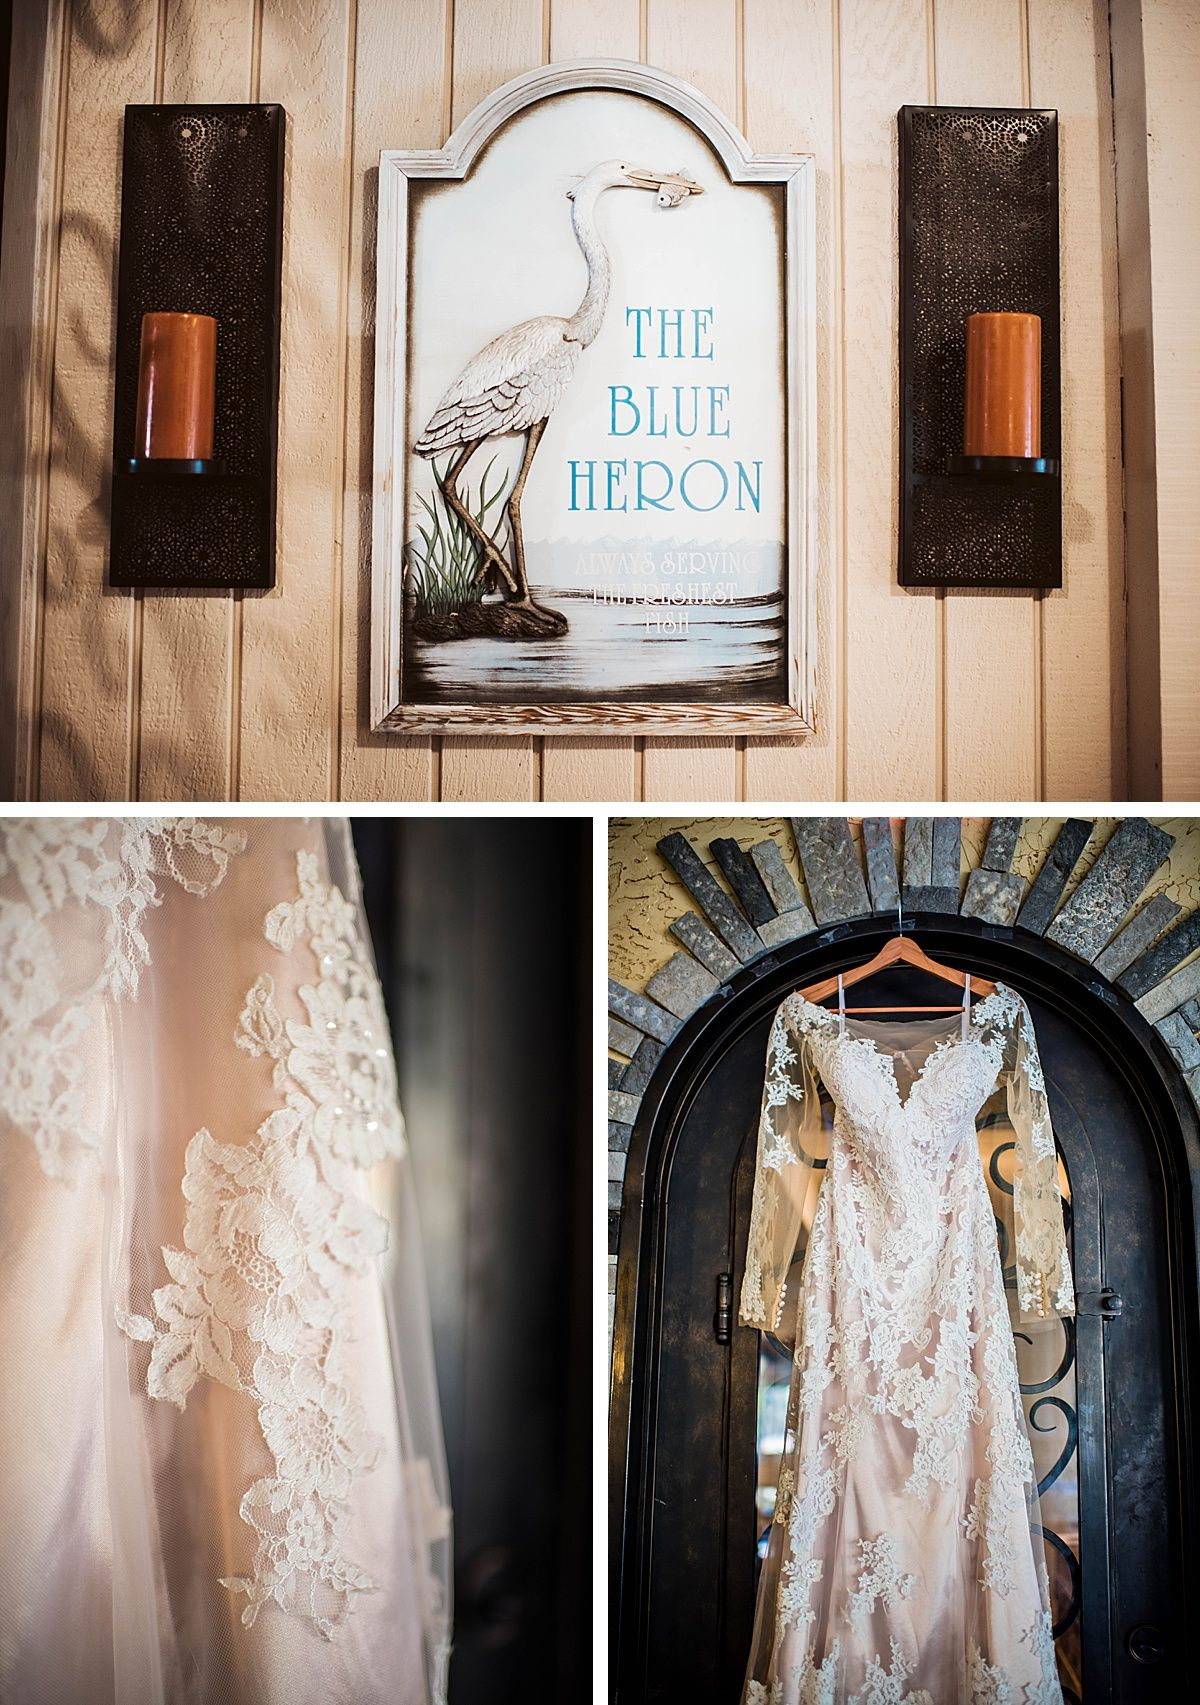 Coarsegold Central Valley California blue heron Yosemite grill wedding dress